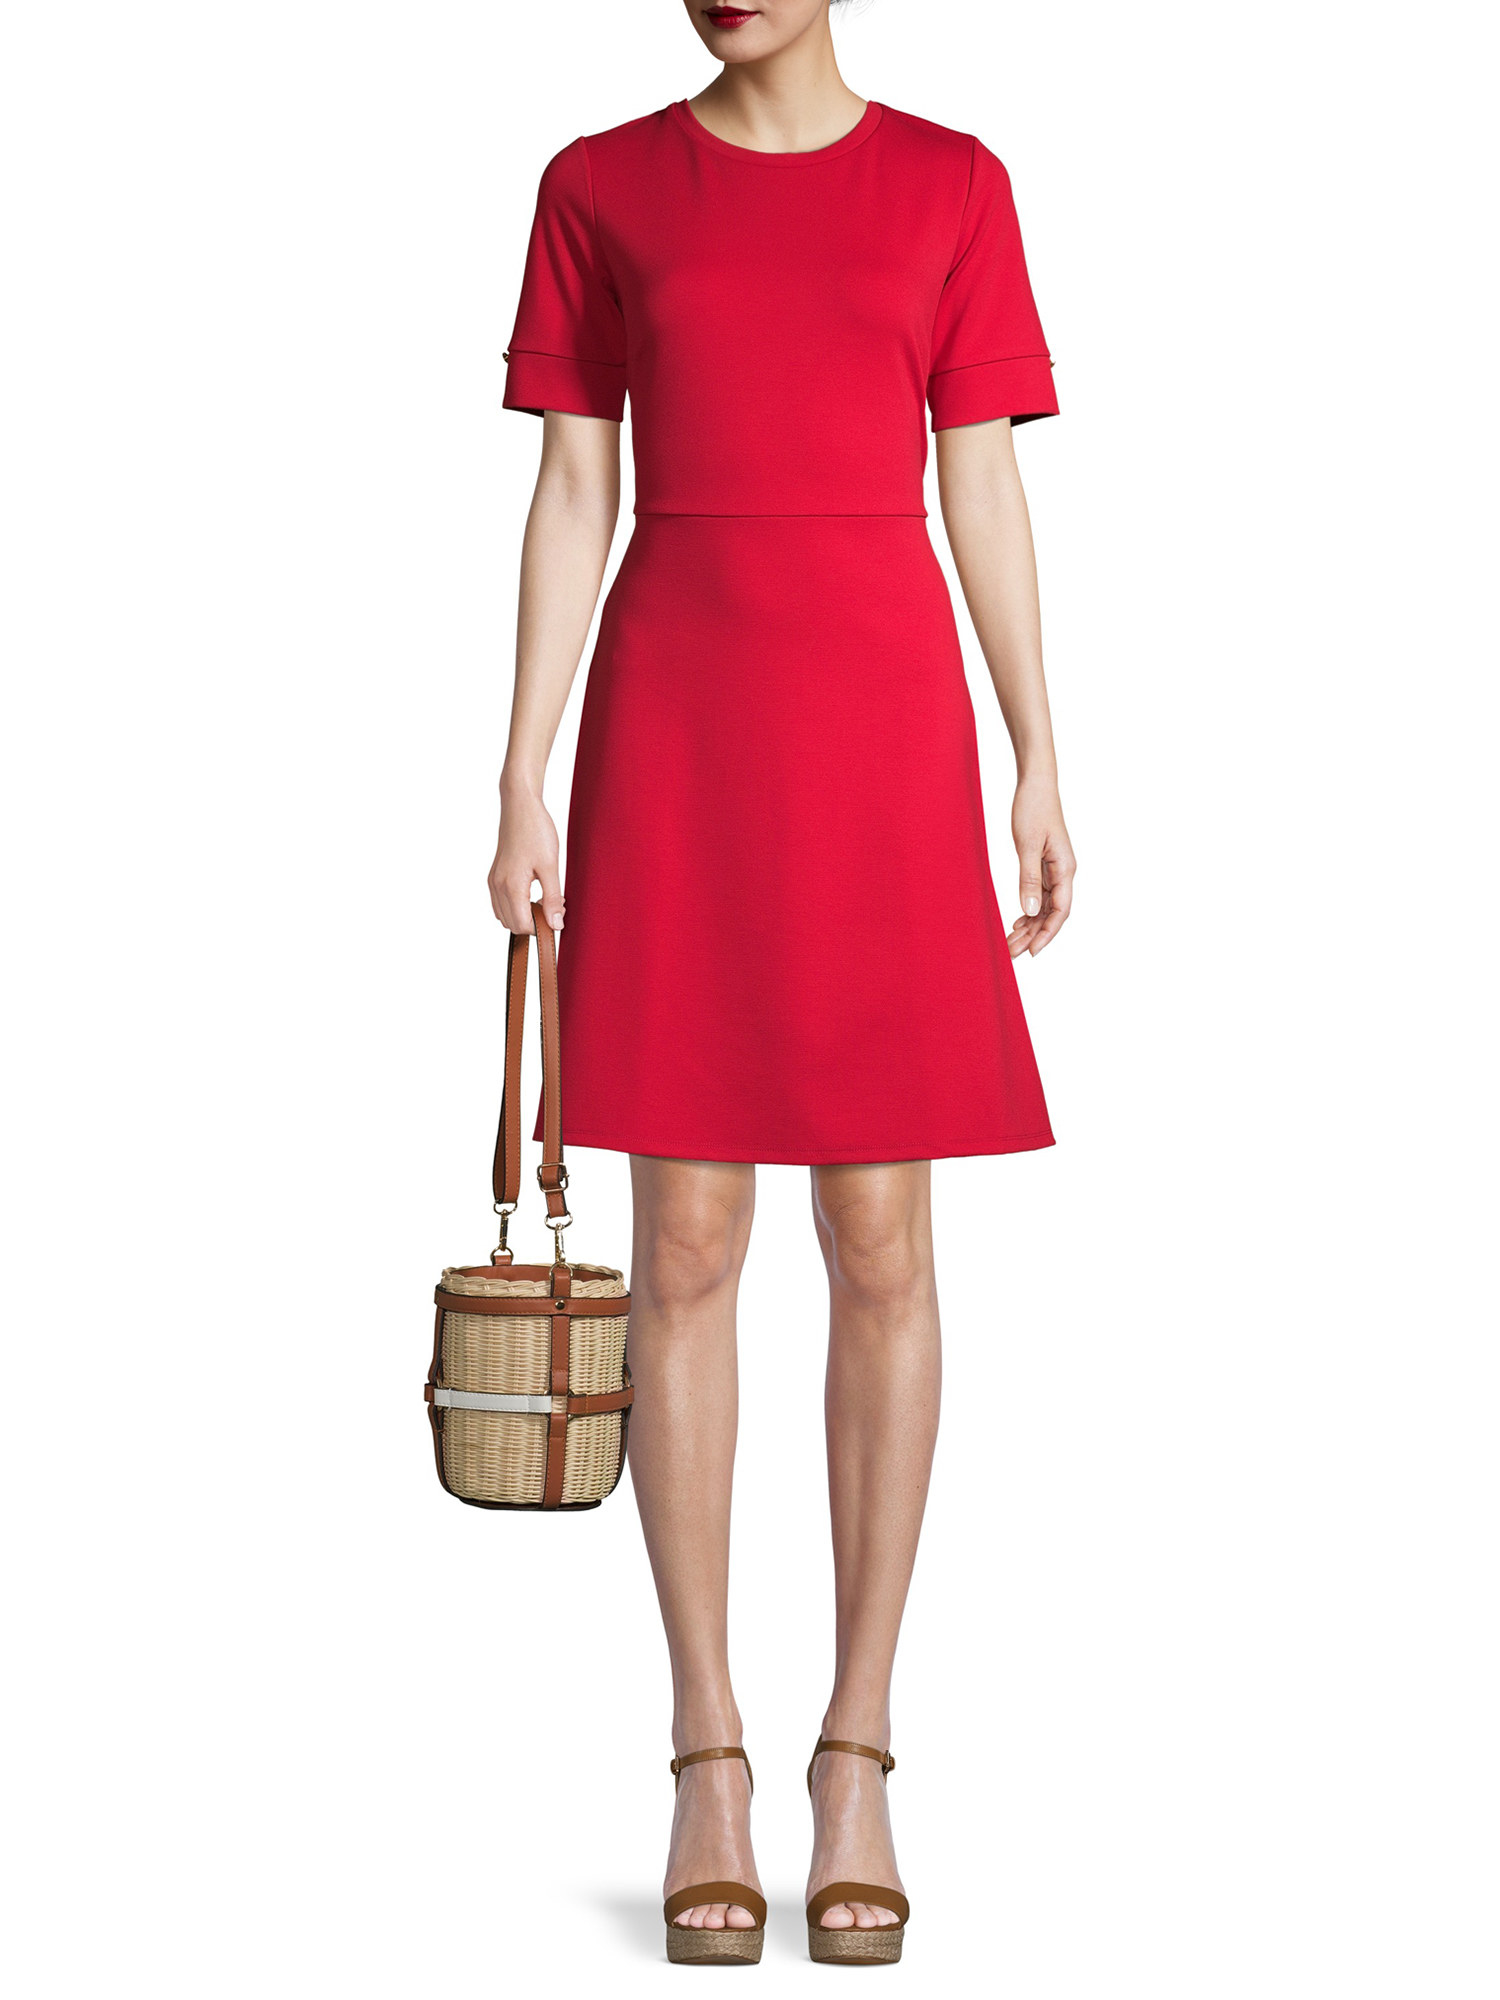 A red sleeved dress that falls above the knee